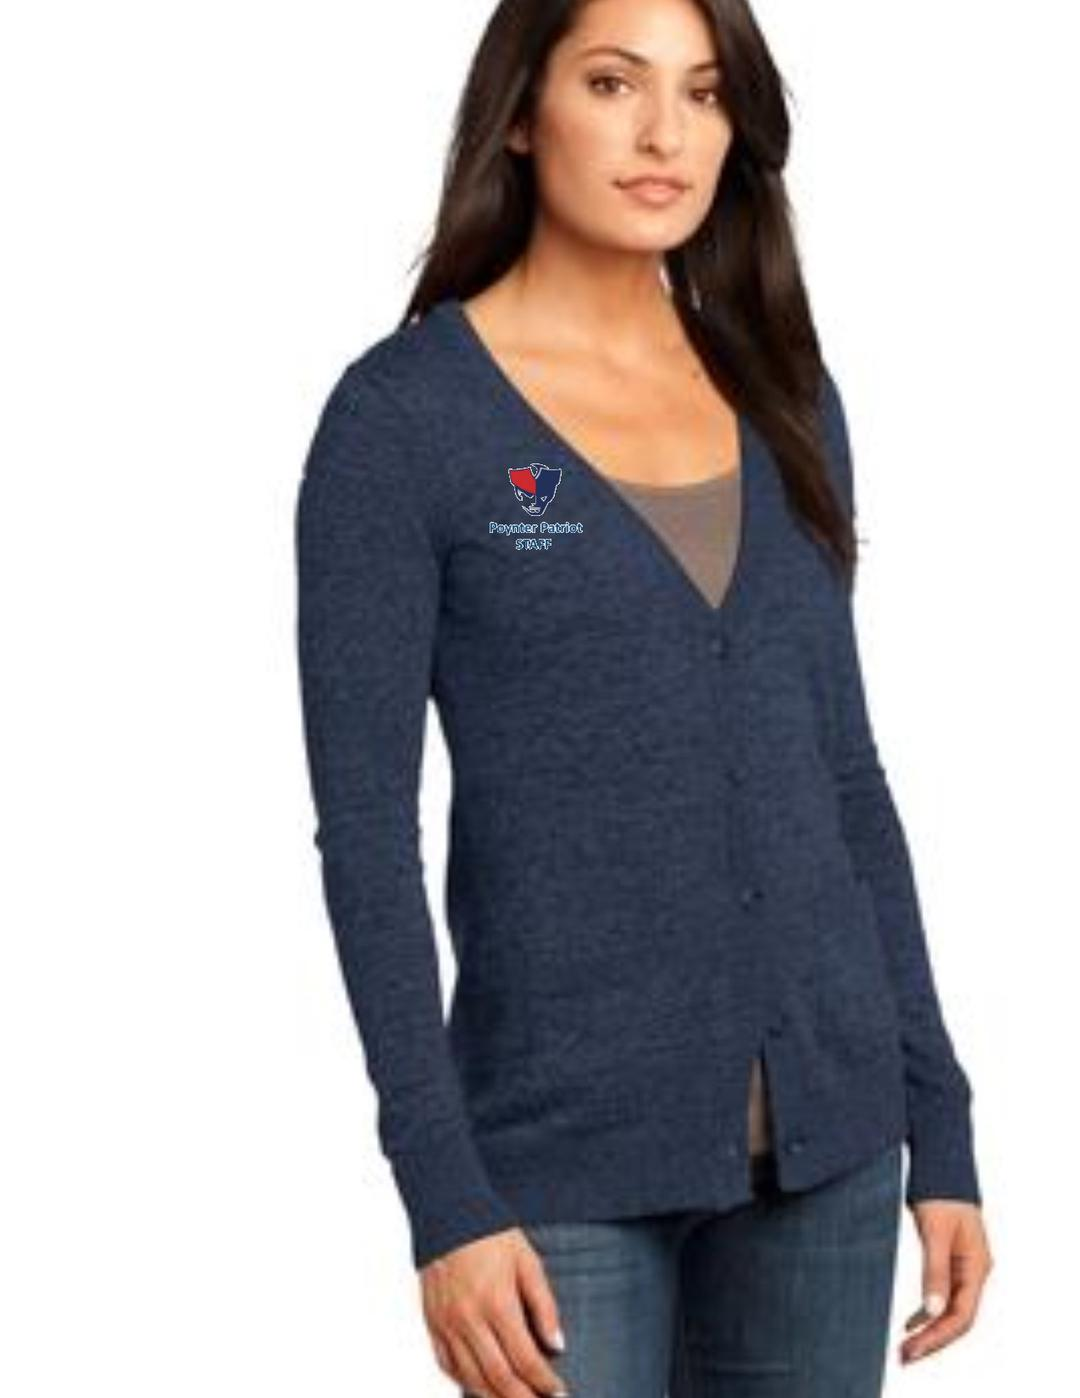 e9876bf251b567 Poynter Staff District Made® - Ladies Cardigan Sweater. .